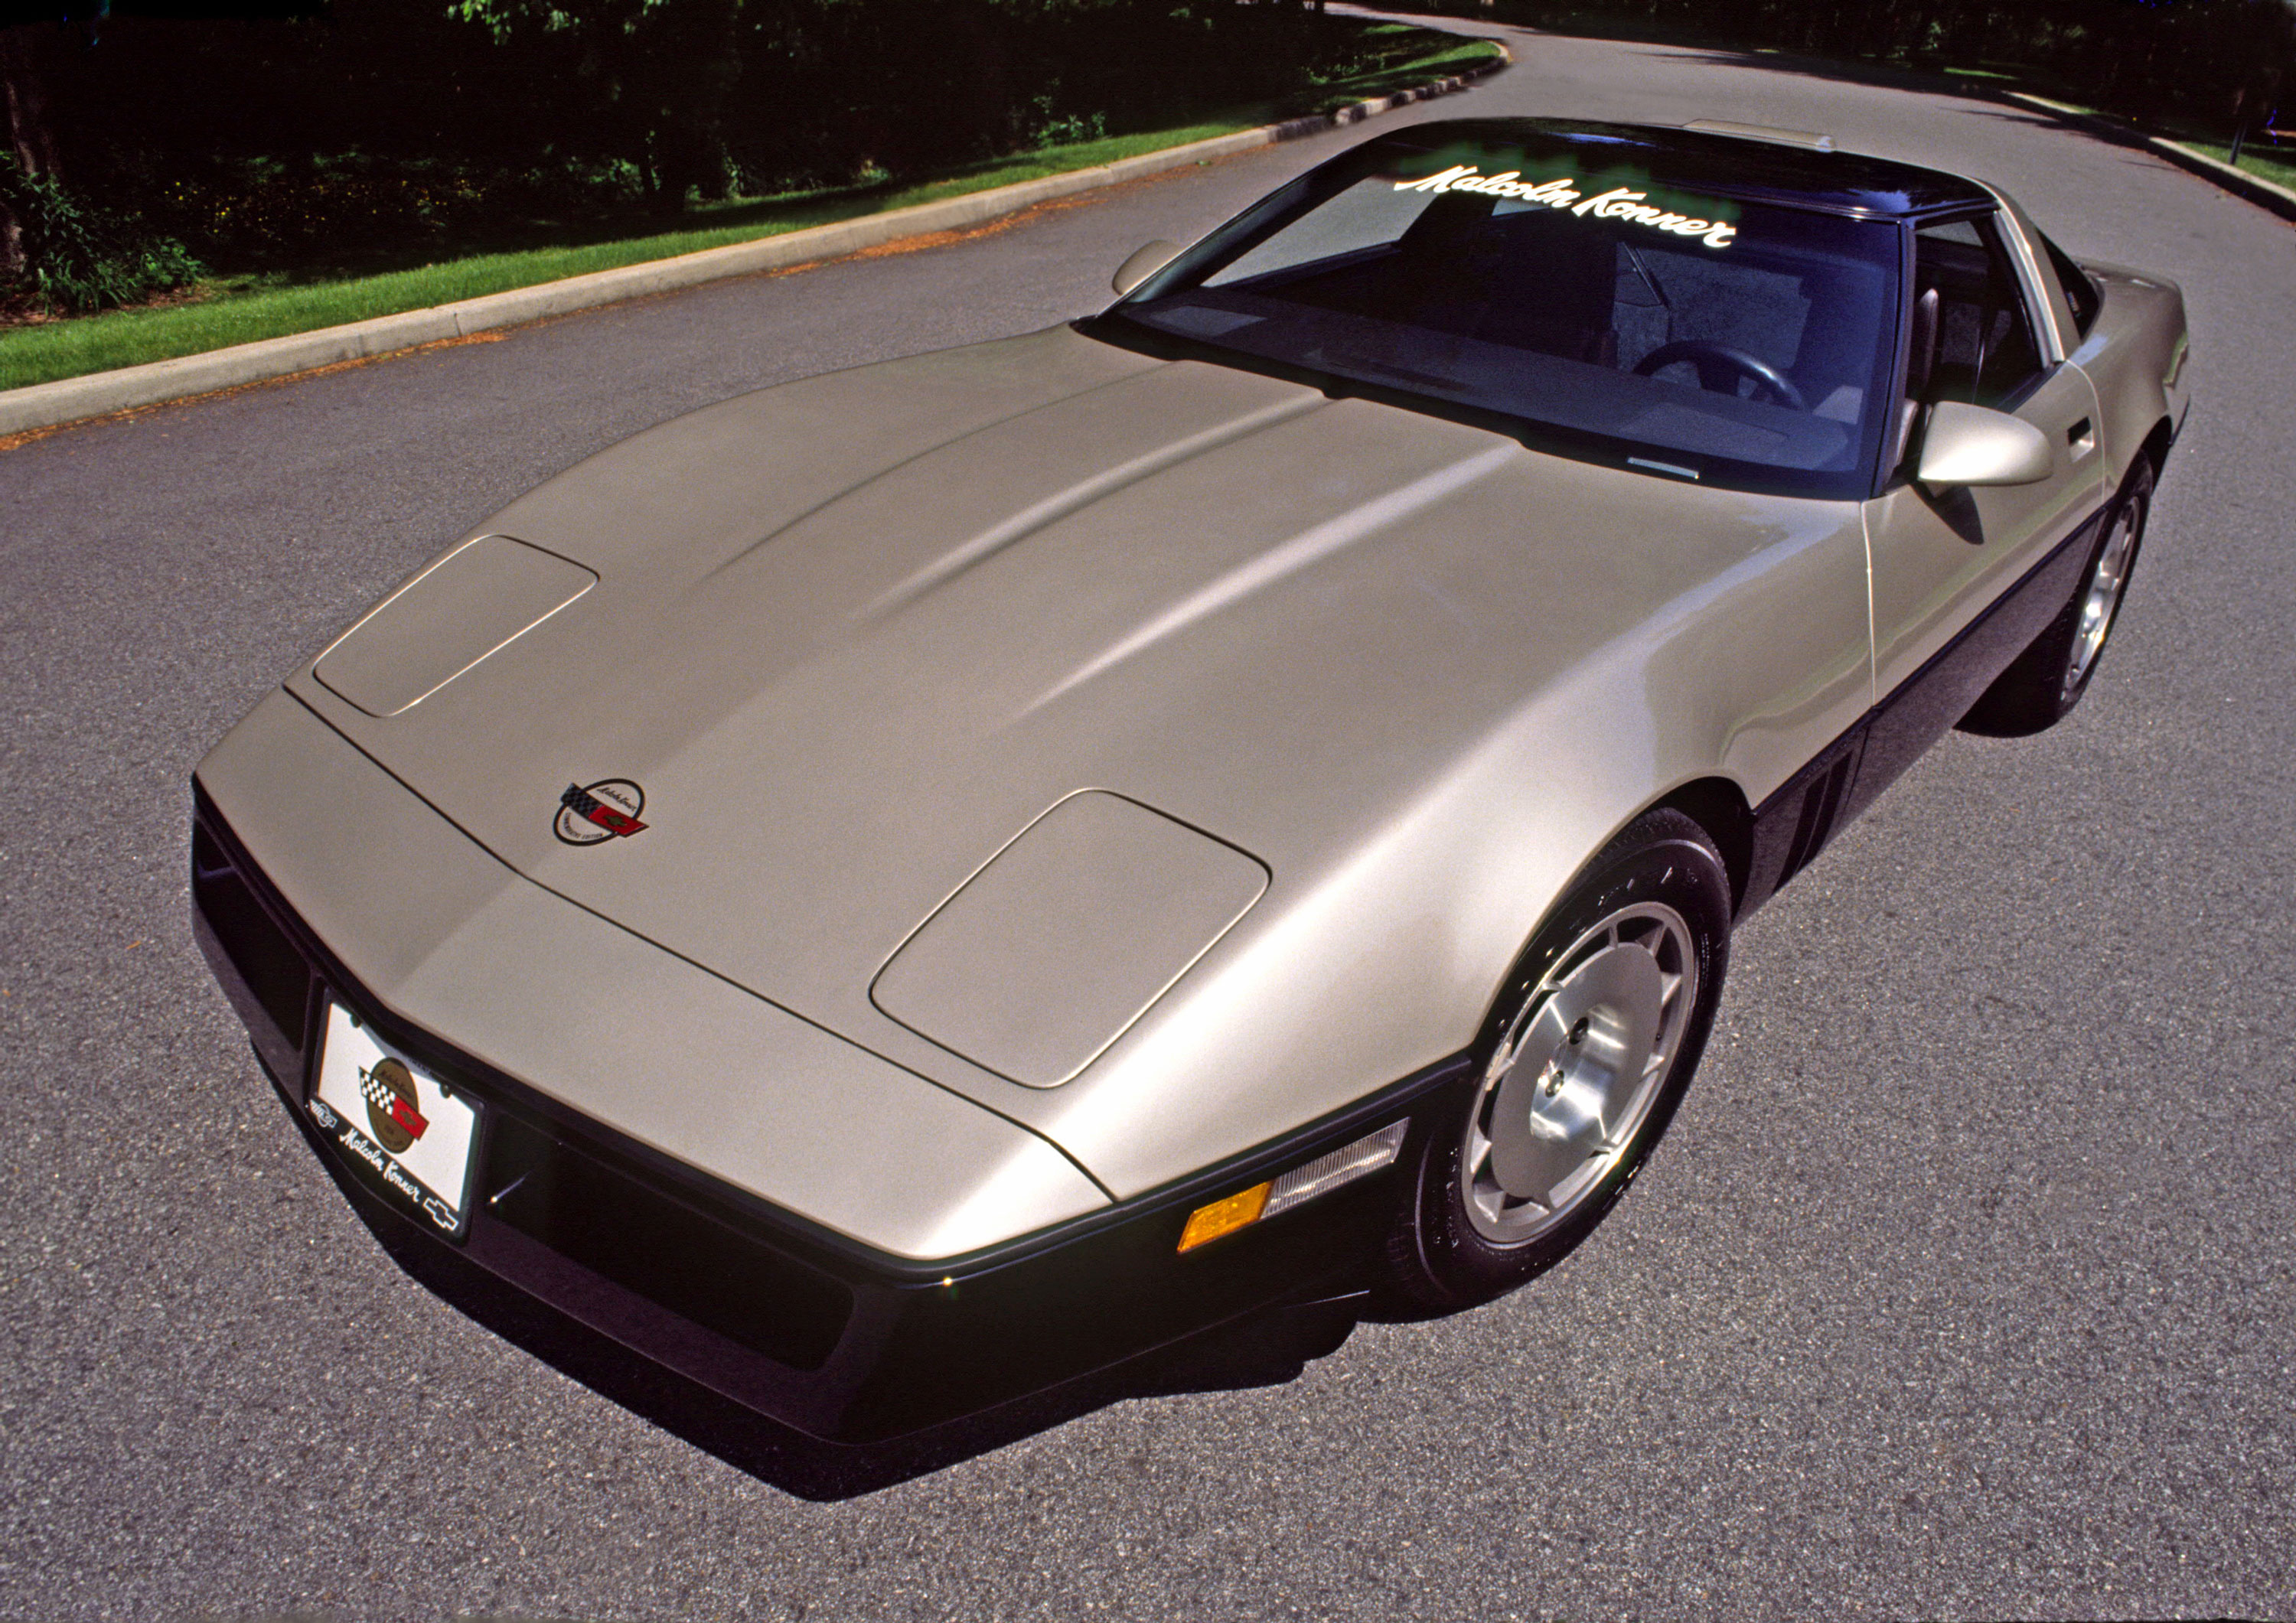 The Konner Corvette: How one dealer got its own special-edition sports car thumbnail